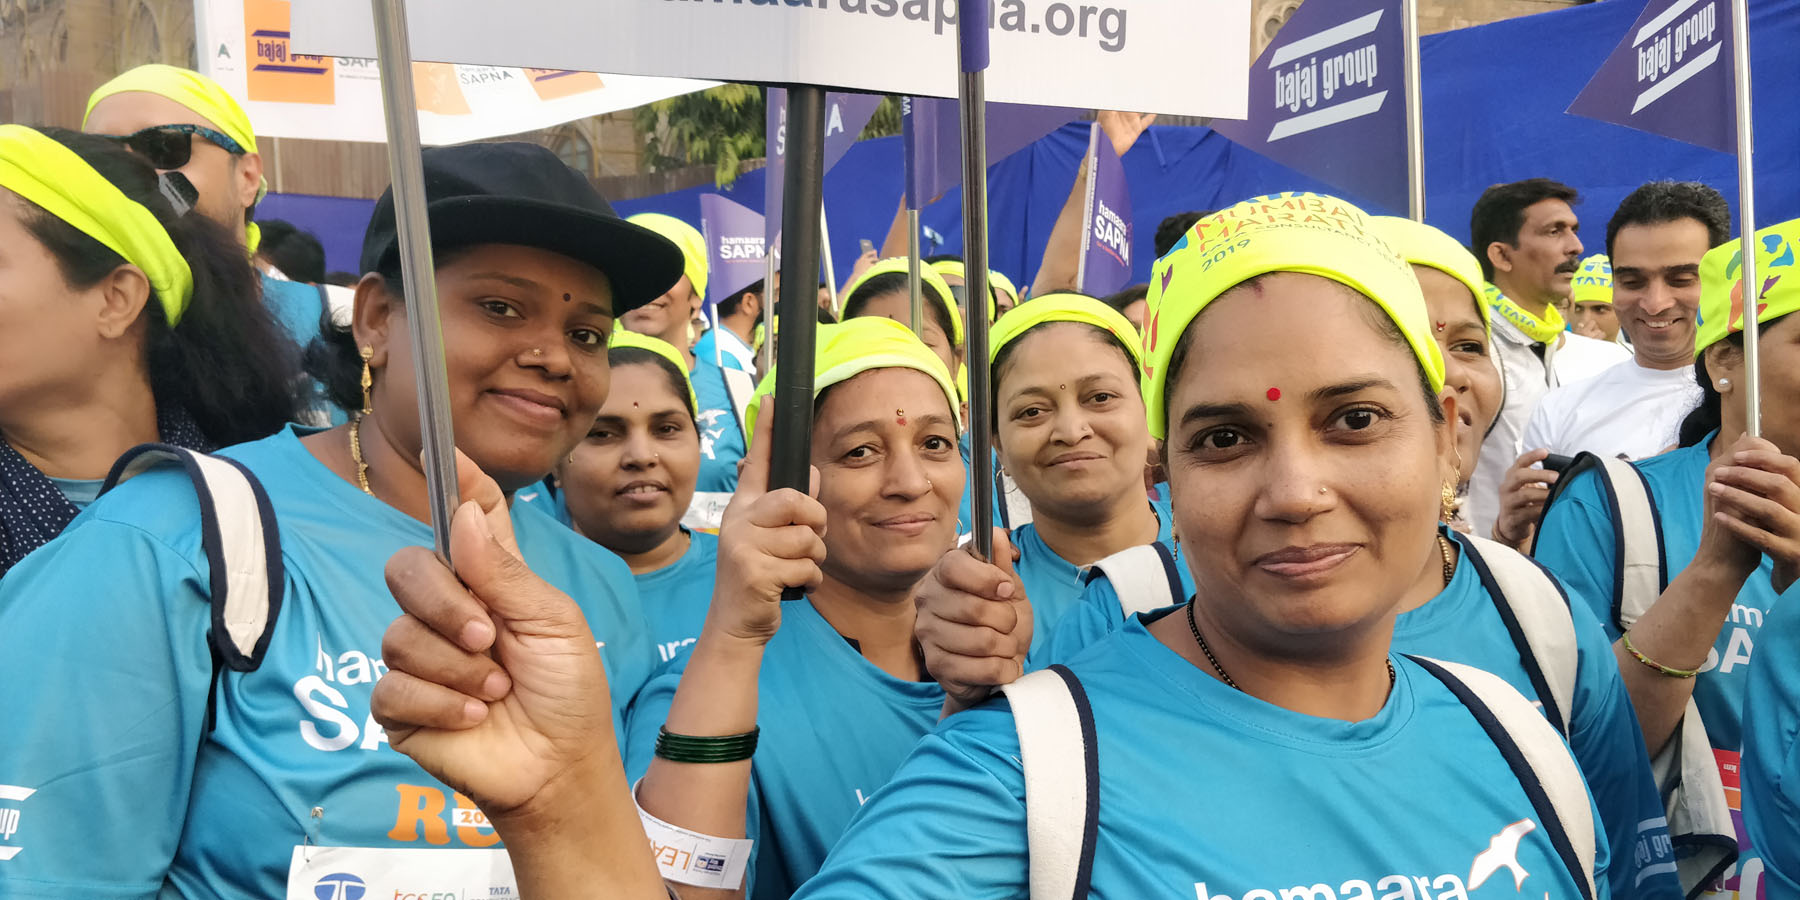 Dharavi Centre beneficiaries with staff of Dharavi Centre in the Marathon. They are proud to carry the placards and represent Hamaara Sapna